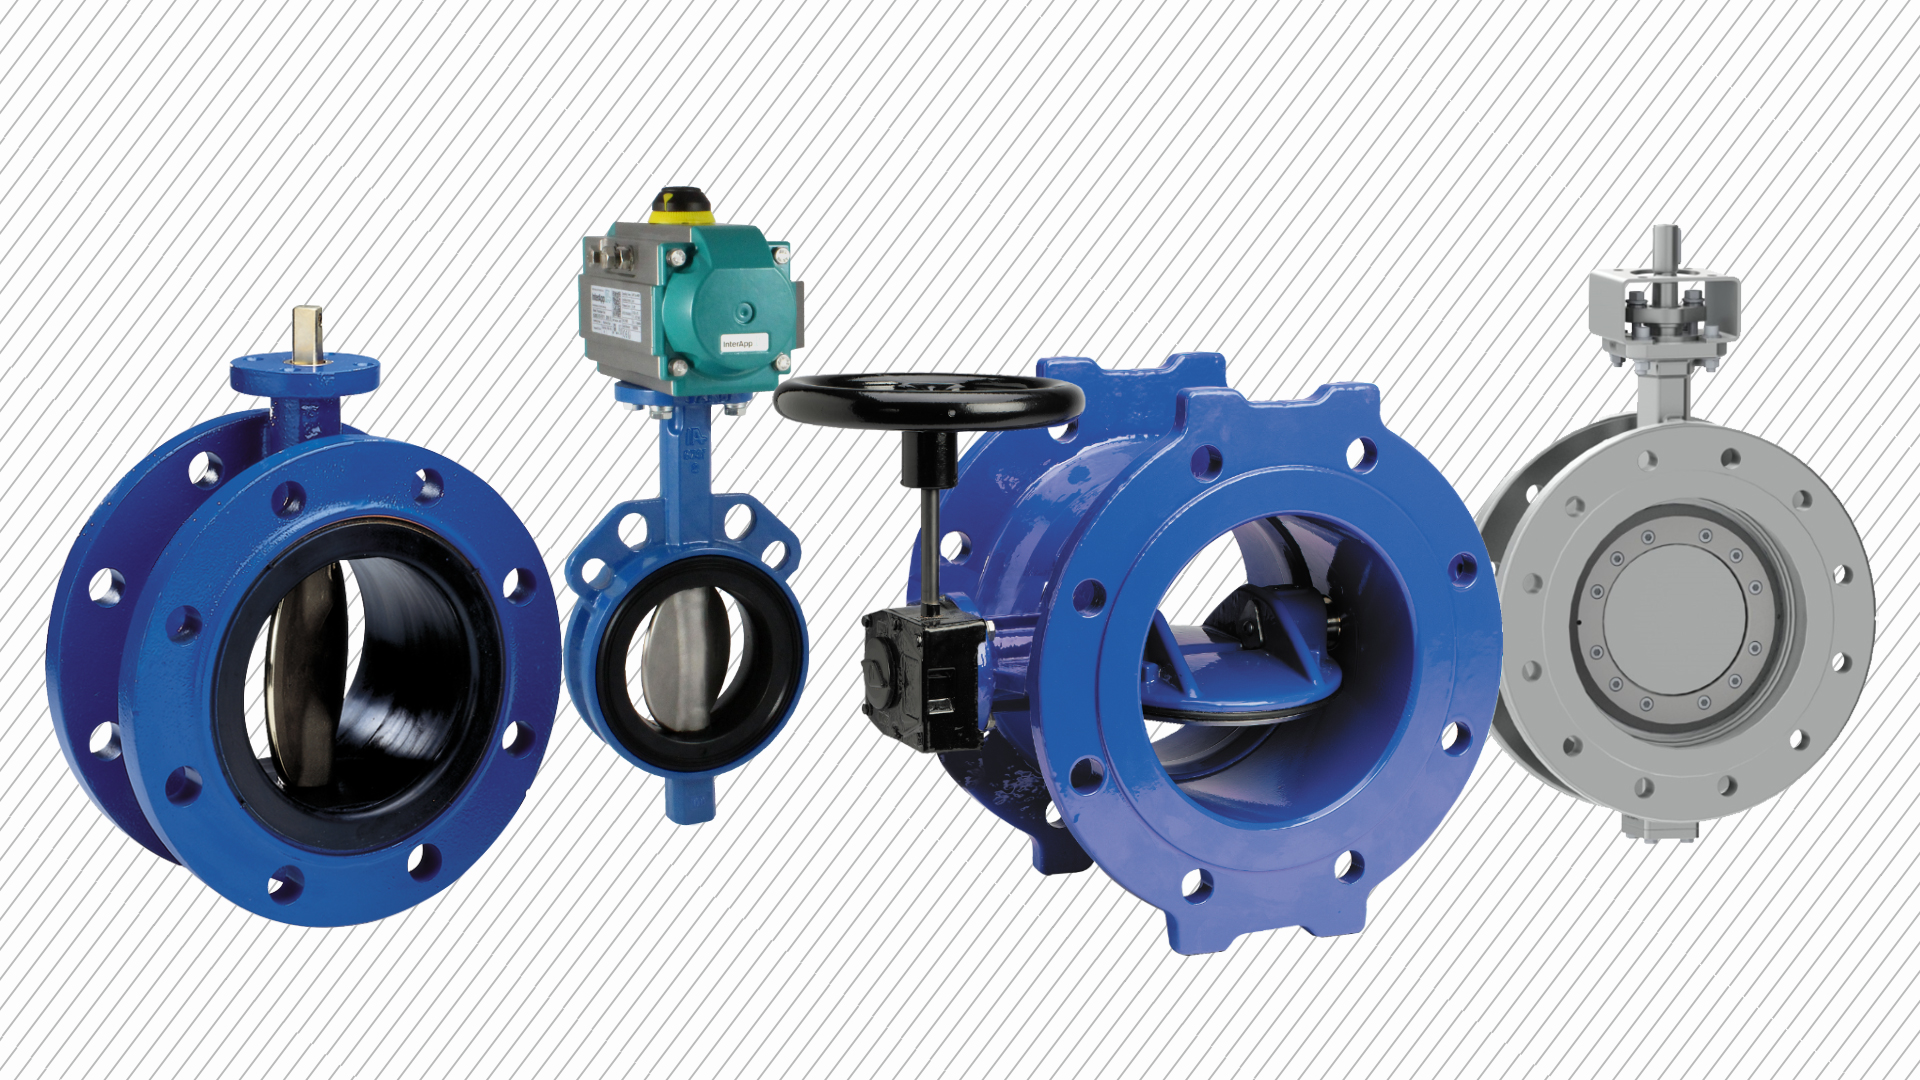 Close-up photo of an AVK double eccentric butterfly valve